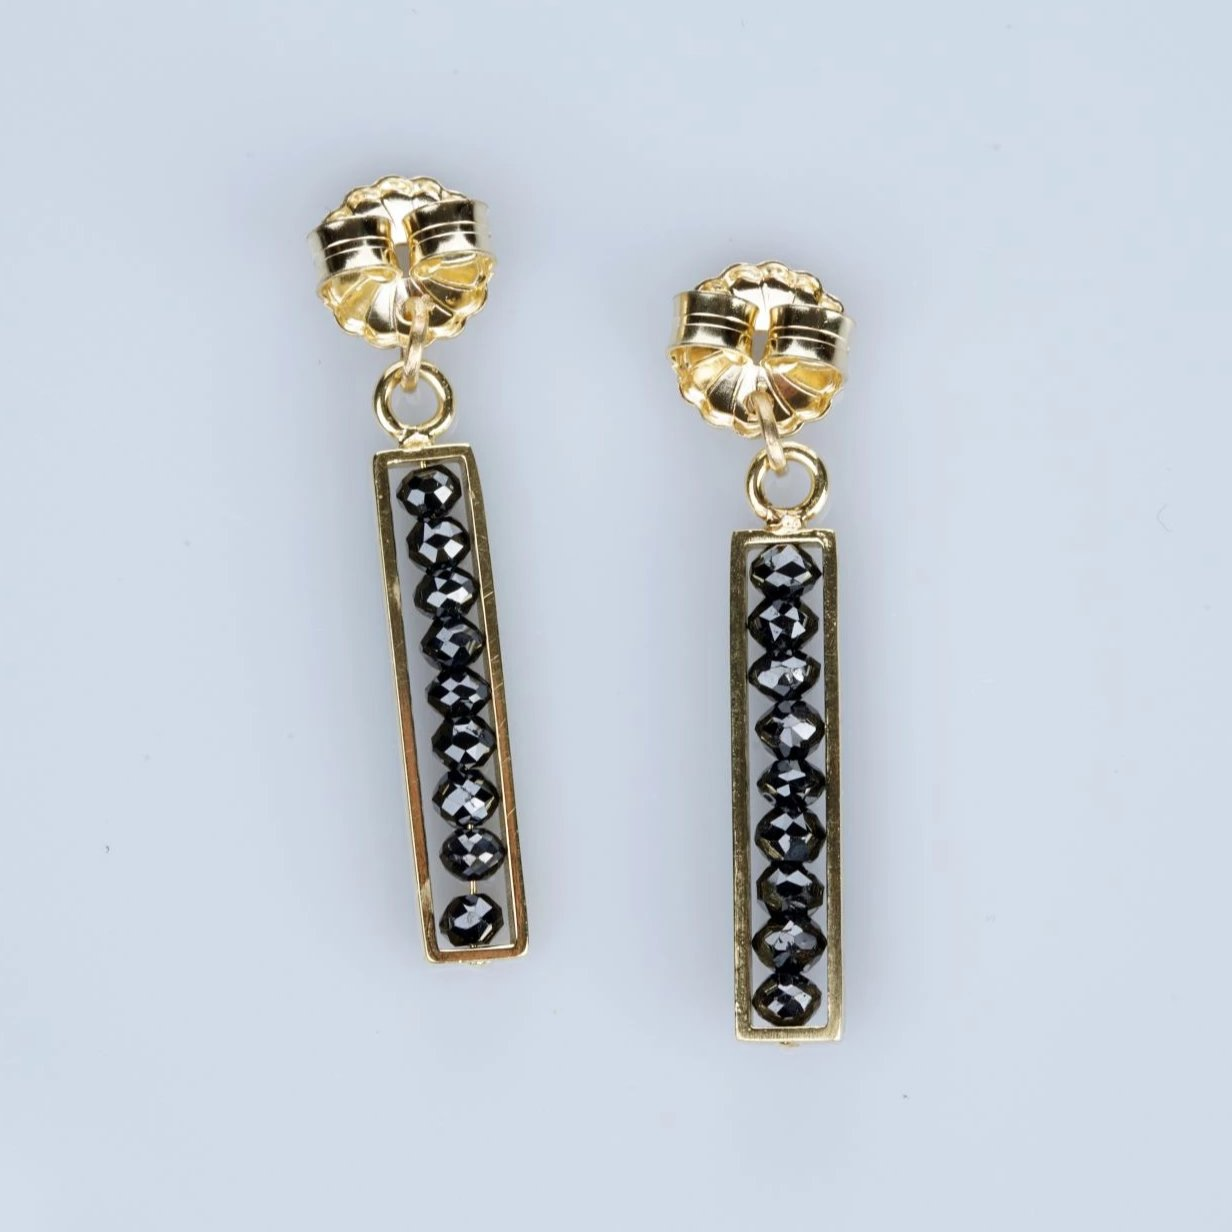 18k yellow gold black diamond bar backs, sydney strong, greenville, south carolina